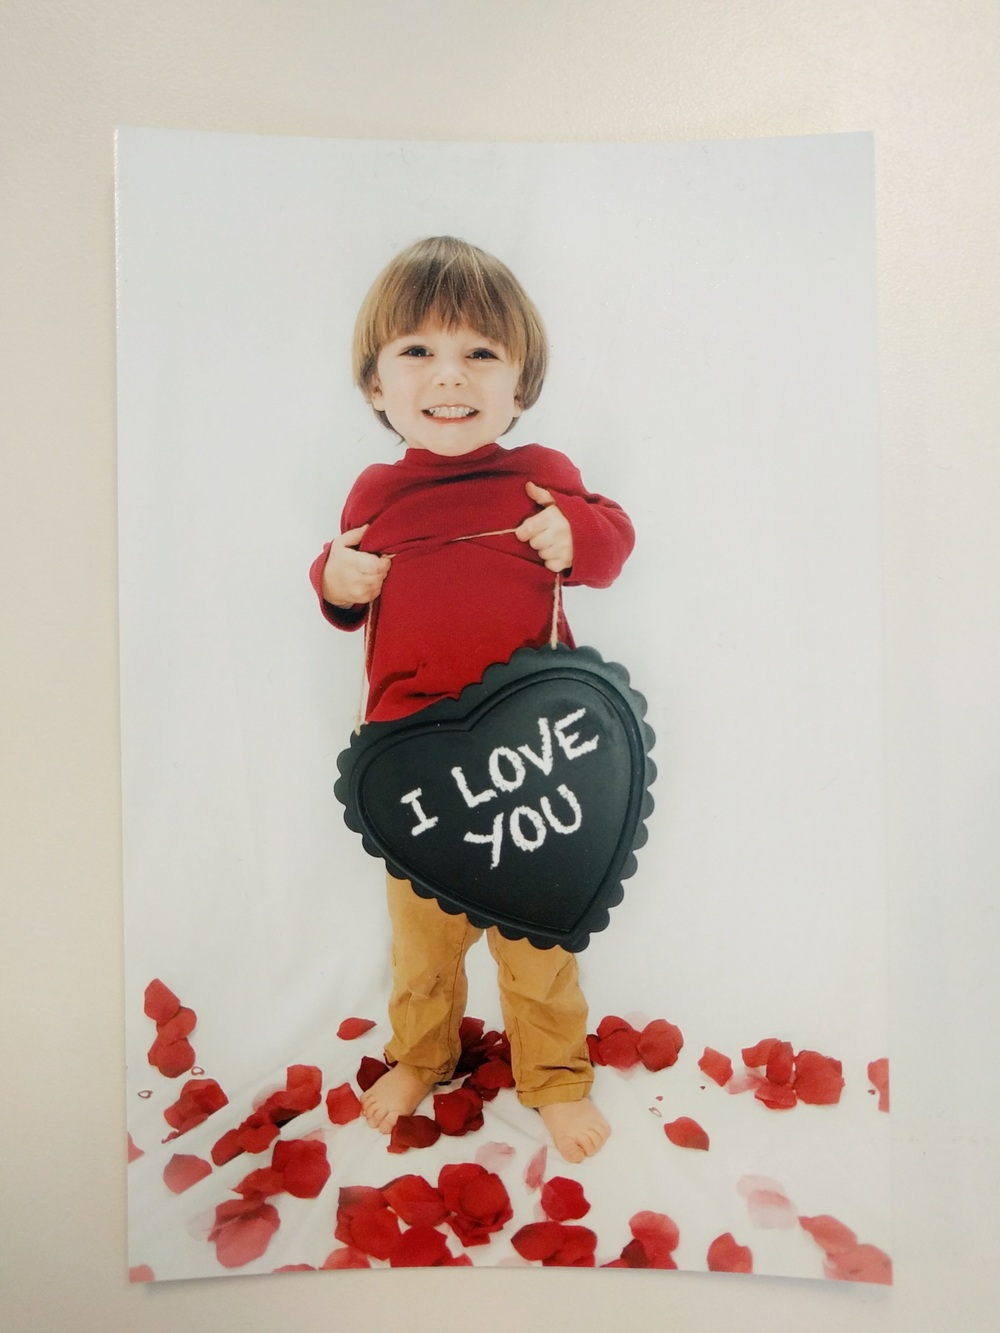 A print of Ryker's 2 1/2 year/Valentines photos